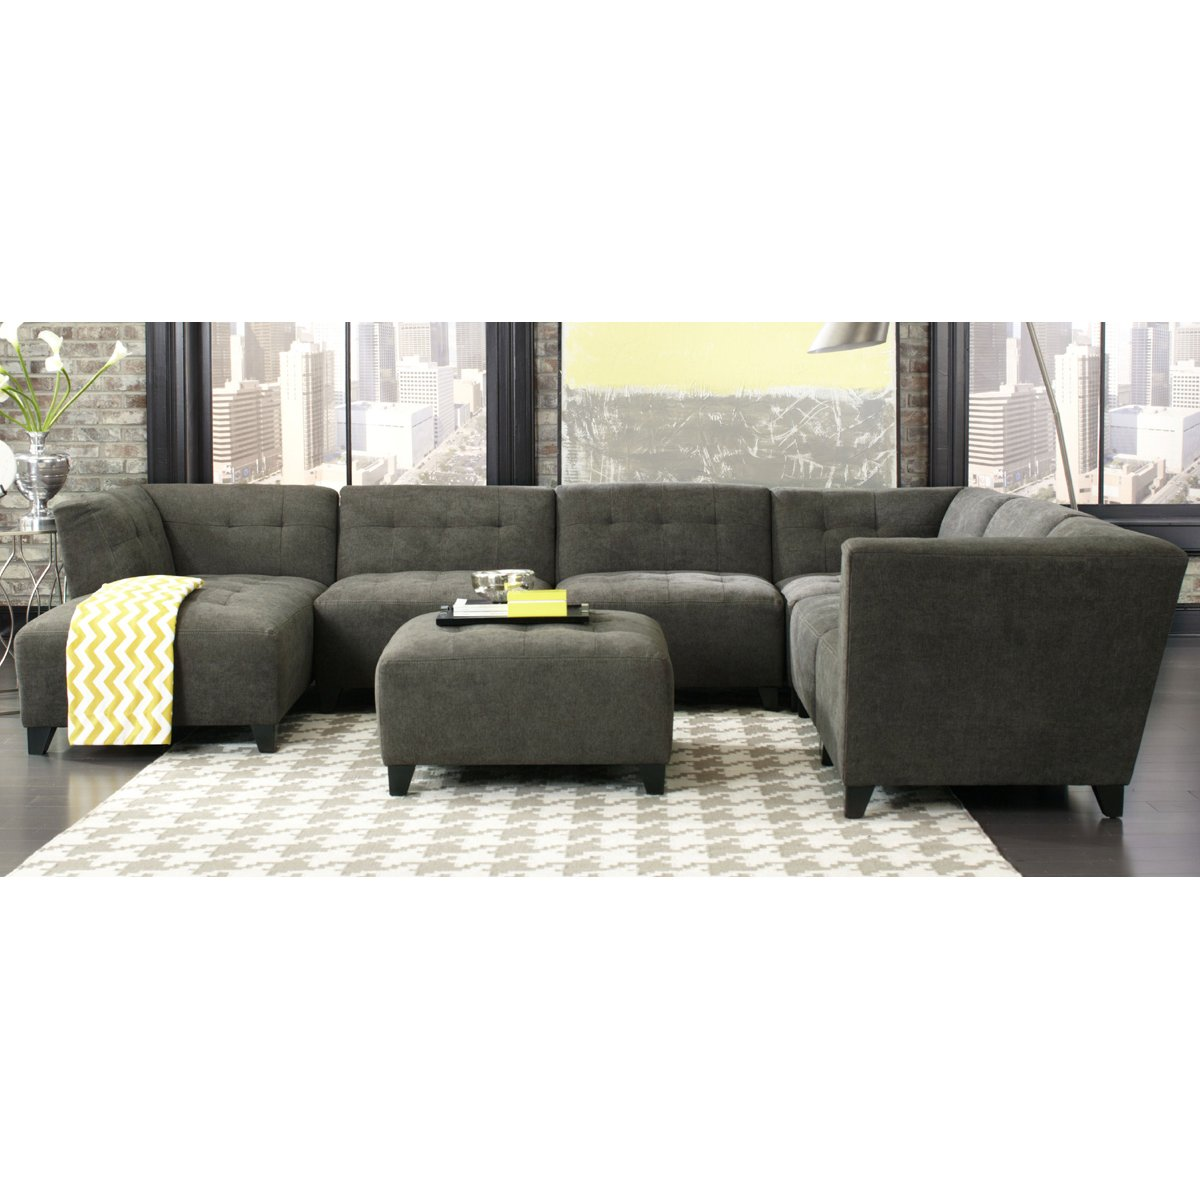 ... Classic Modern Granite Gray 6 Piece Sectional Sofa   Blaire